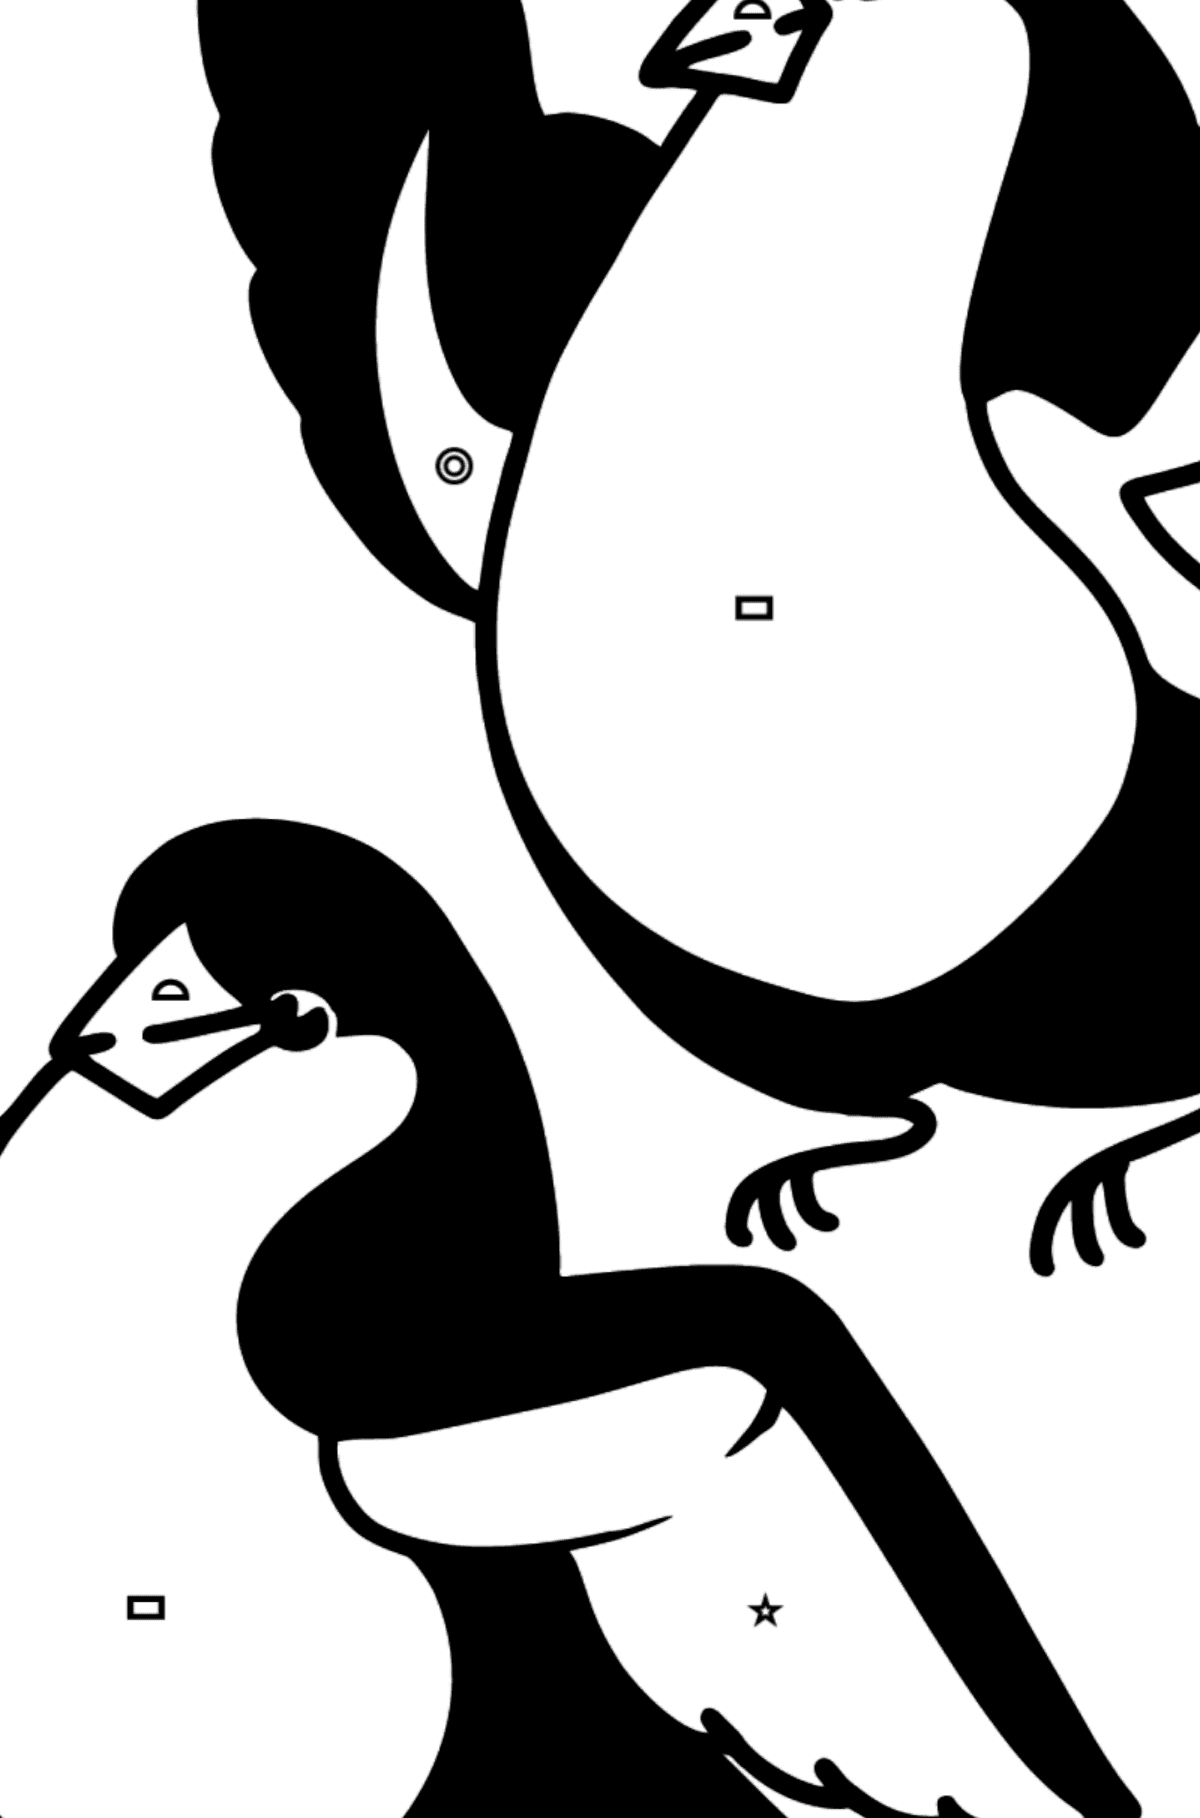 Bullfinches coloring page - Coloring by Geometric Shapes for Kids